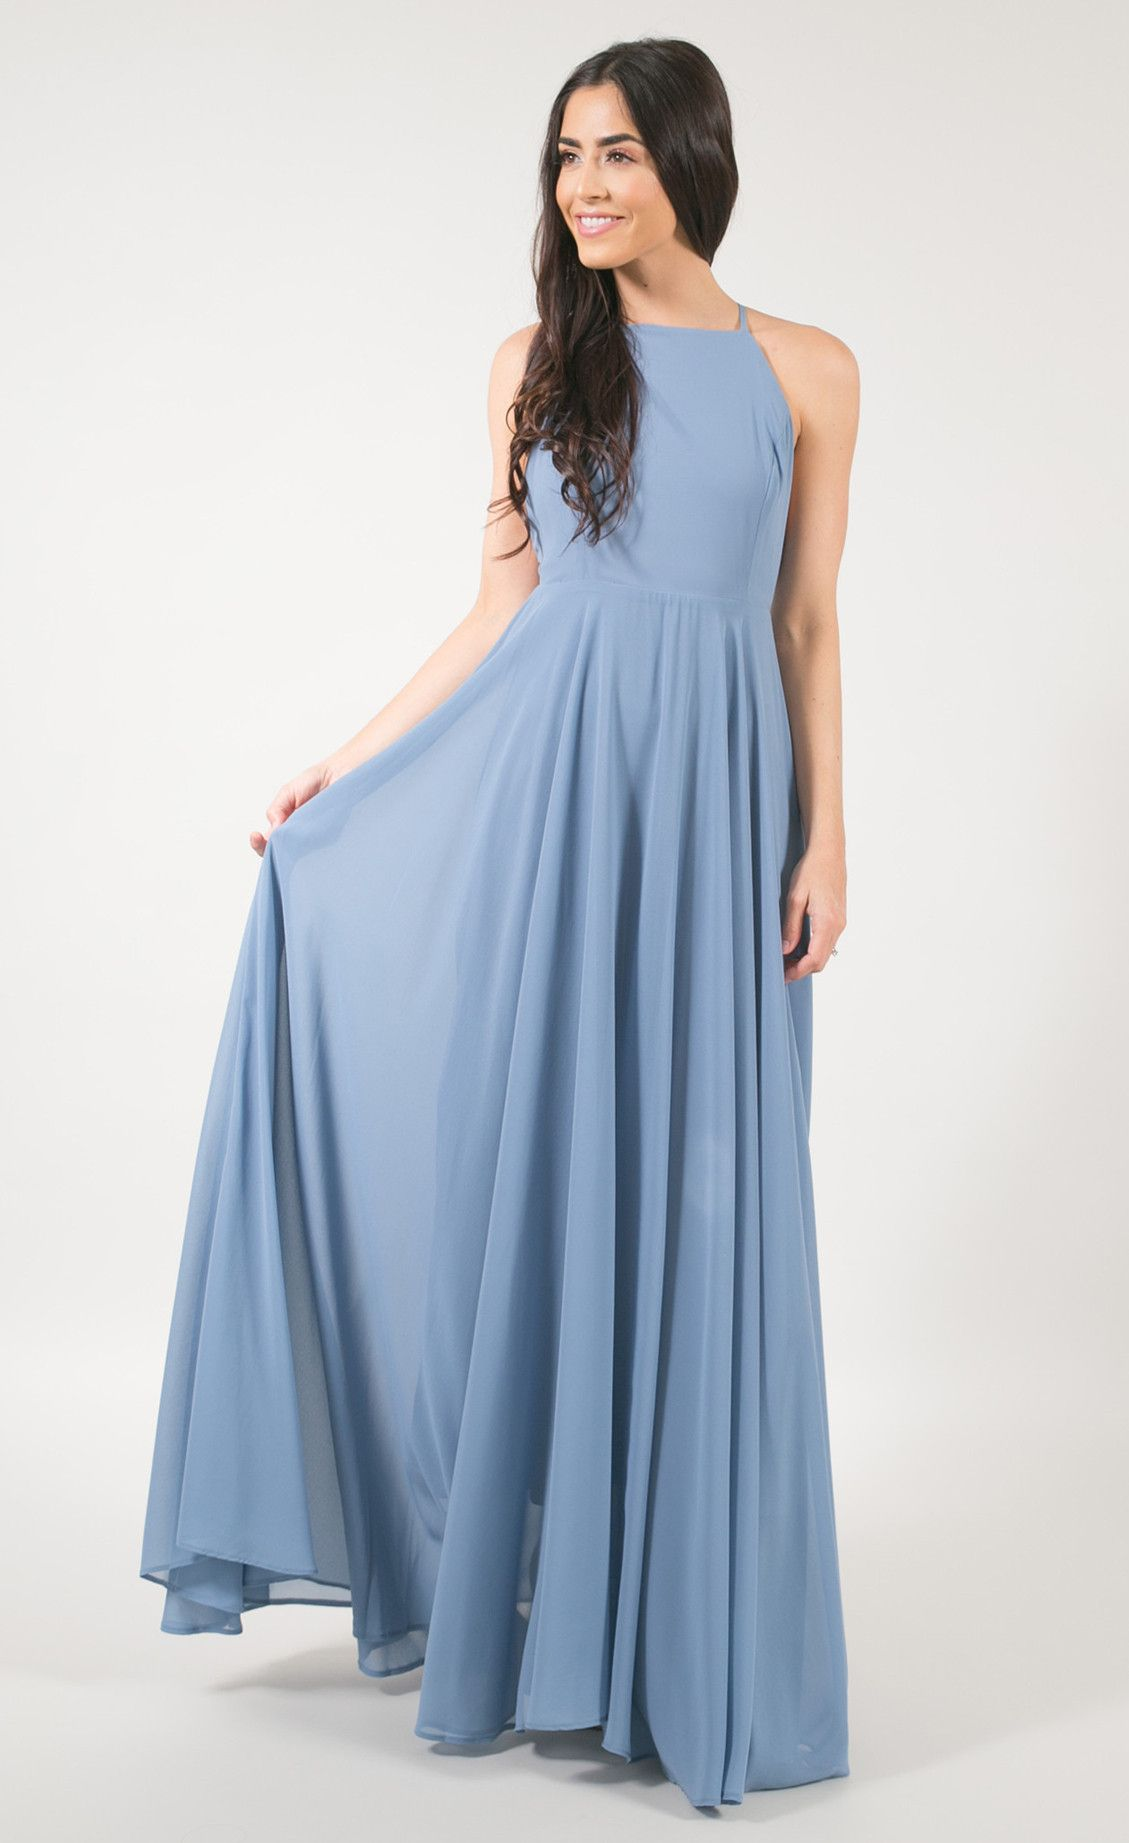 Reign Dusty Blue Flowy Maxi Dress - Find the perfect dress for any occasion  at ShopLuckyDuck.com f50b70cd3738